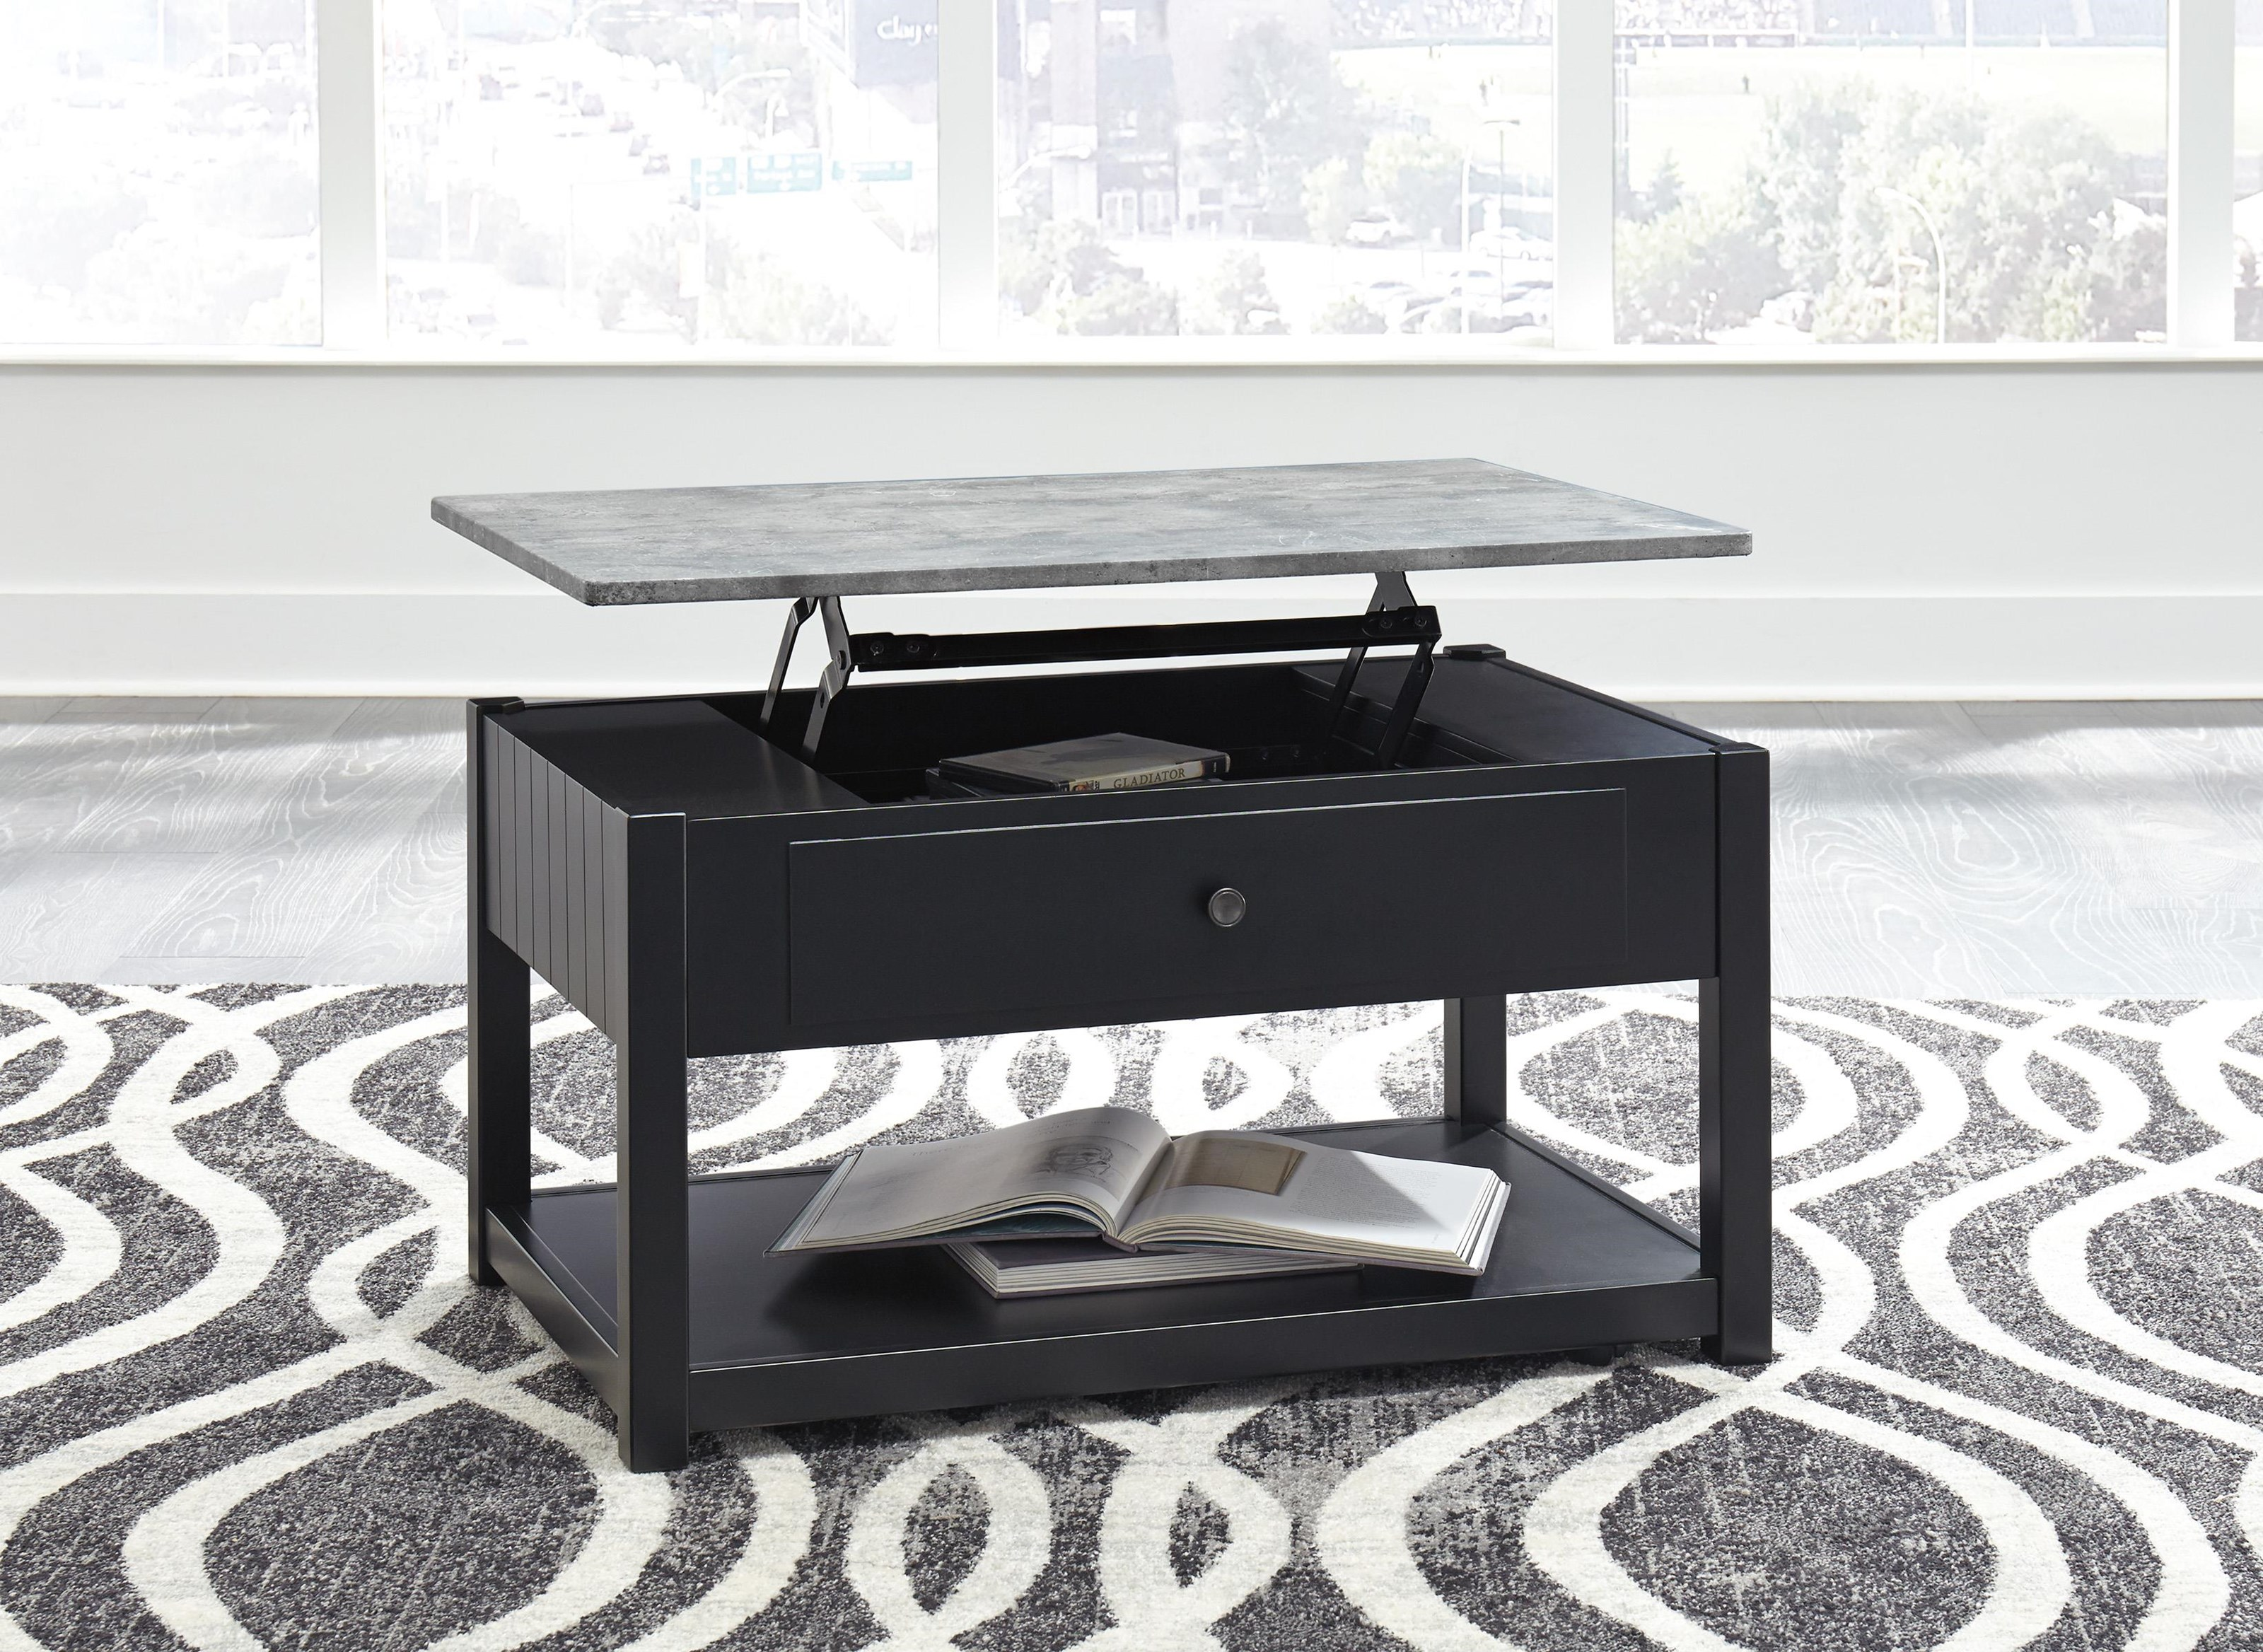 Ezmonei 2 Piece Coffee Table Set by Signature Design by Ashley at Sam Levitz Outlet